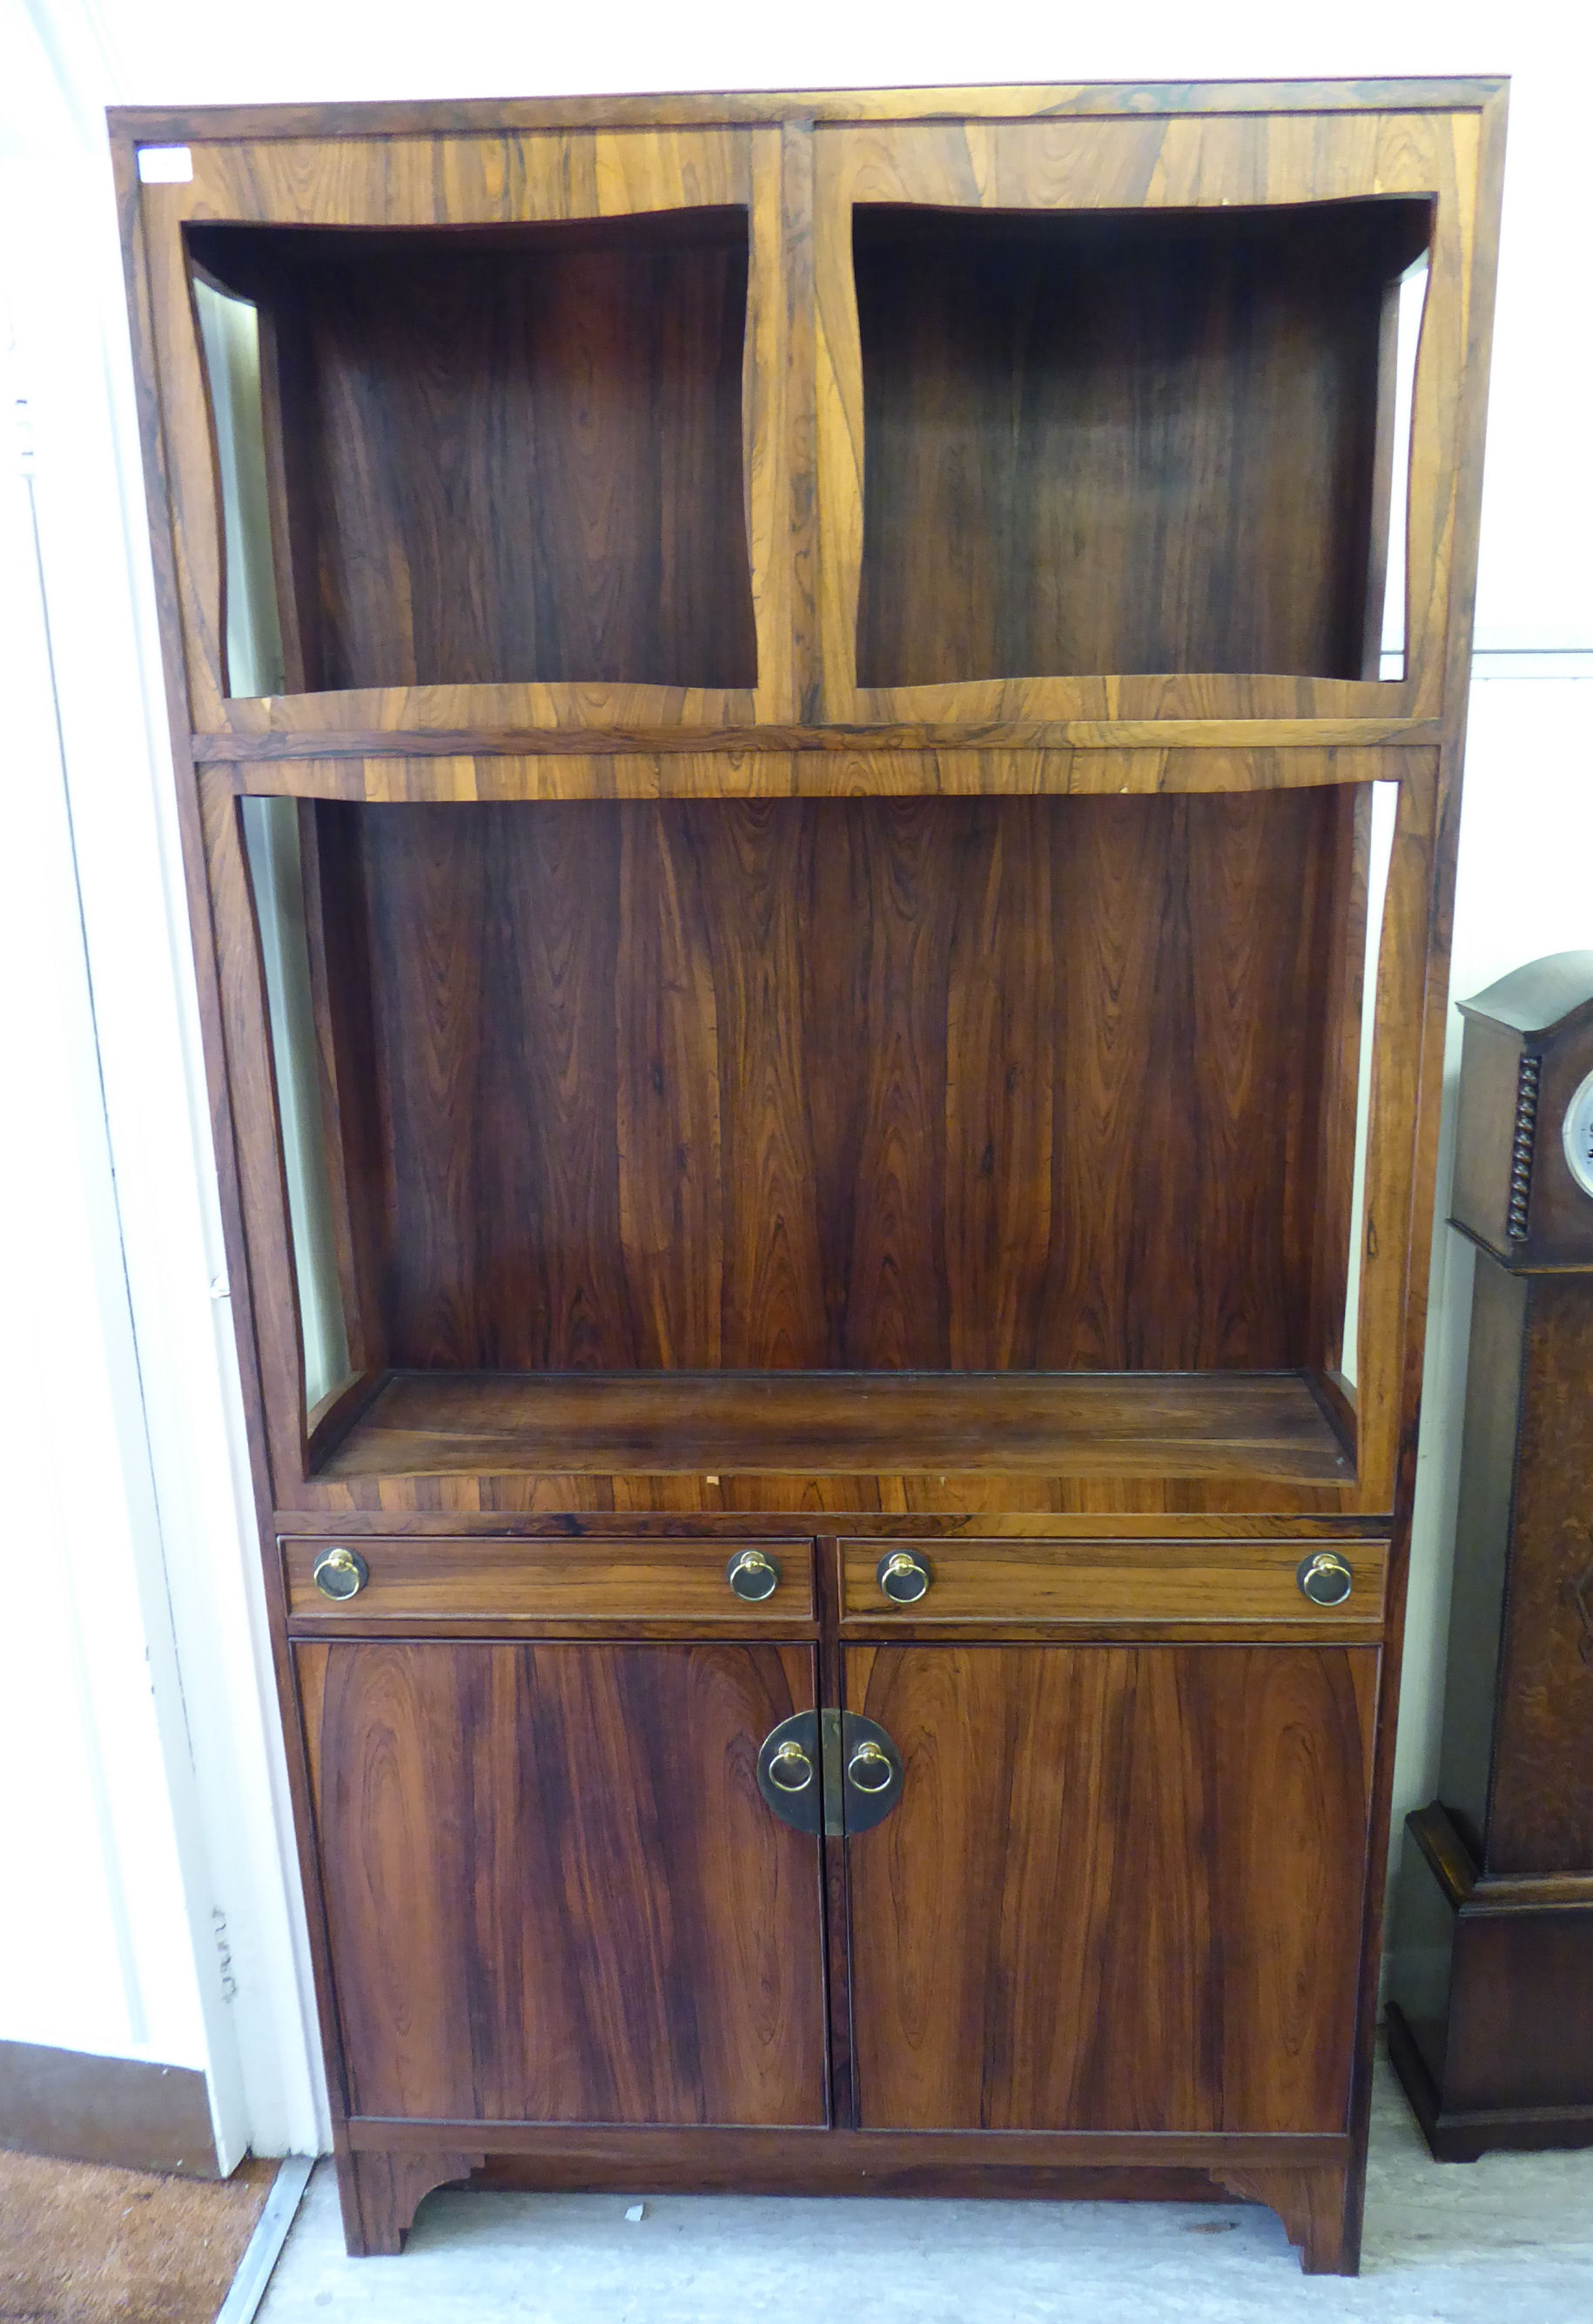 Lot 7 - An early 1970s bespoke rosewood cabinet, the superstructure comprising three open display shelves,